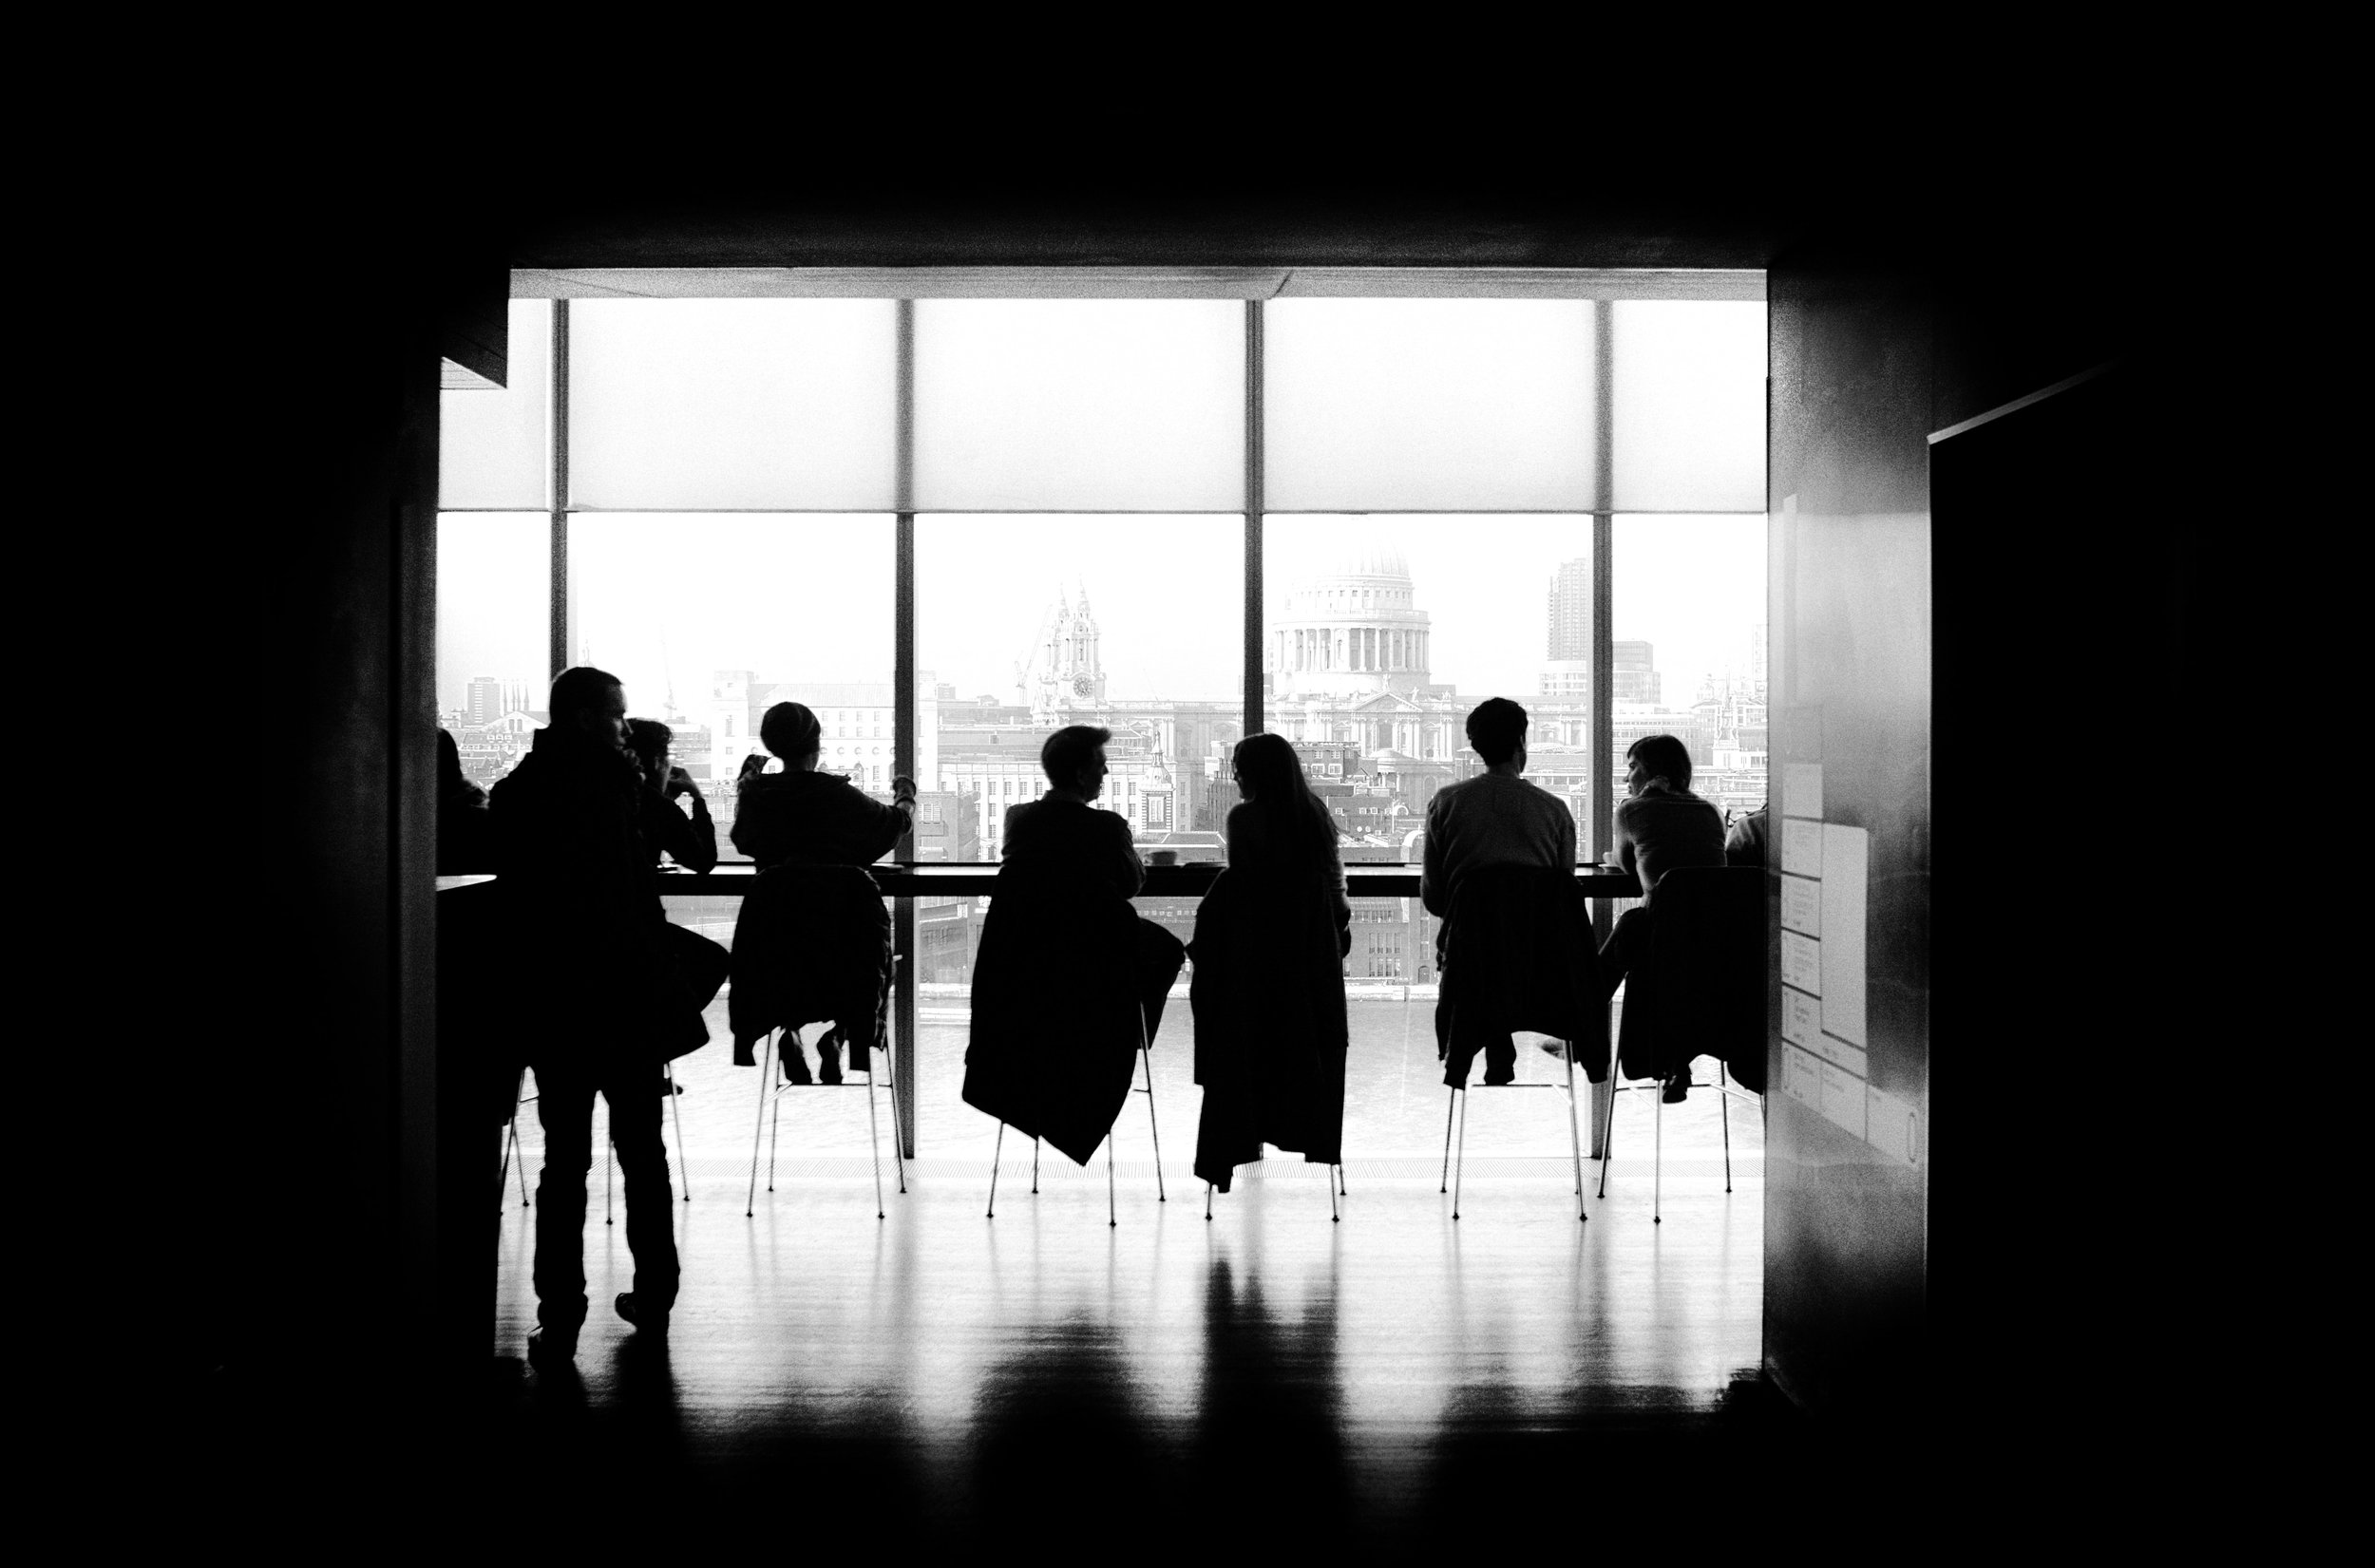 Black and white photo of people on chairs framed by a window.